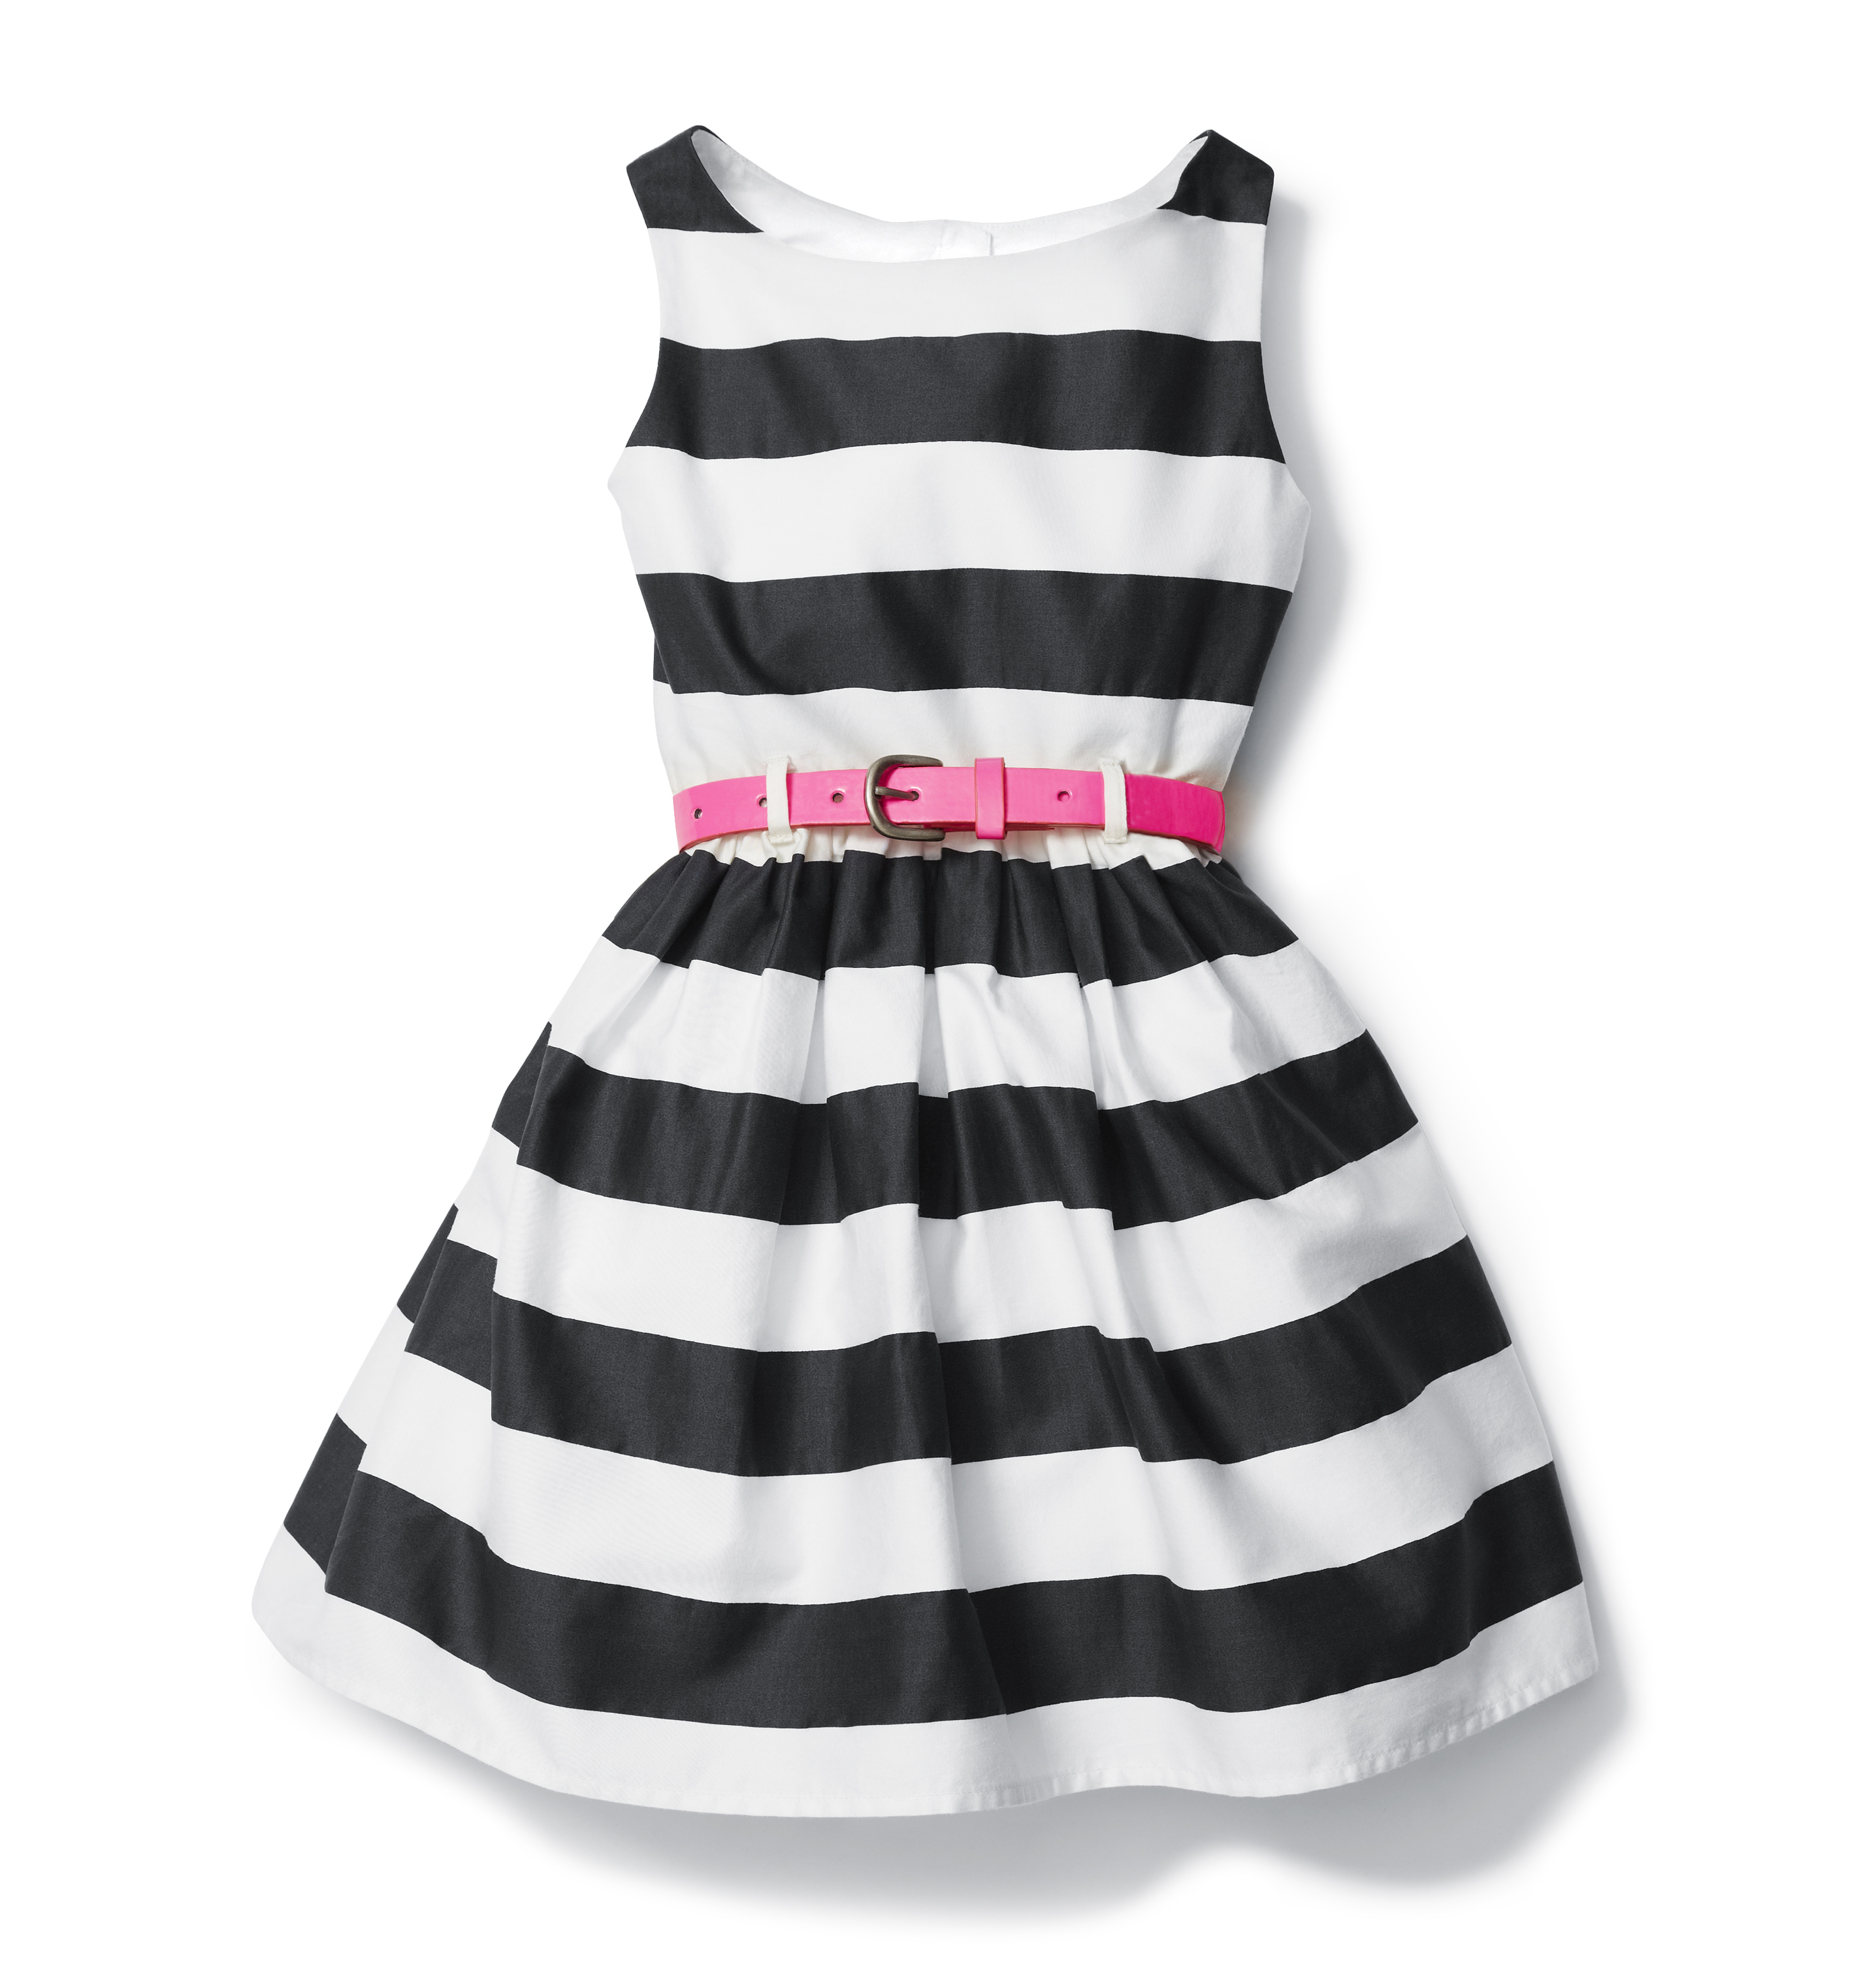 Kids Toddler Girl Belted Dress High-res